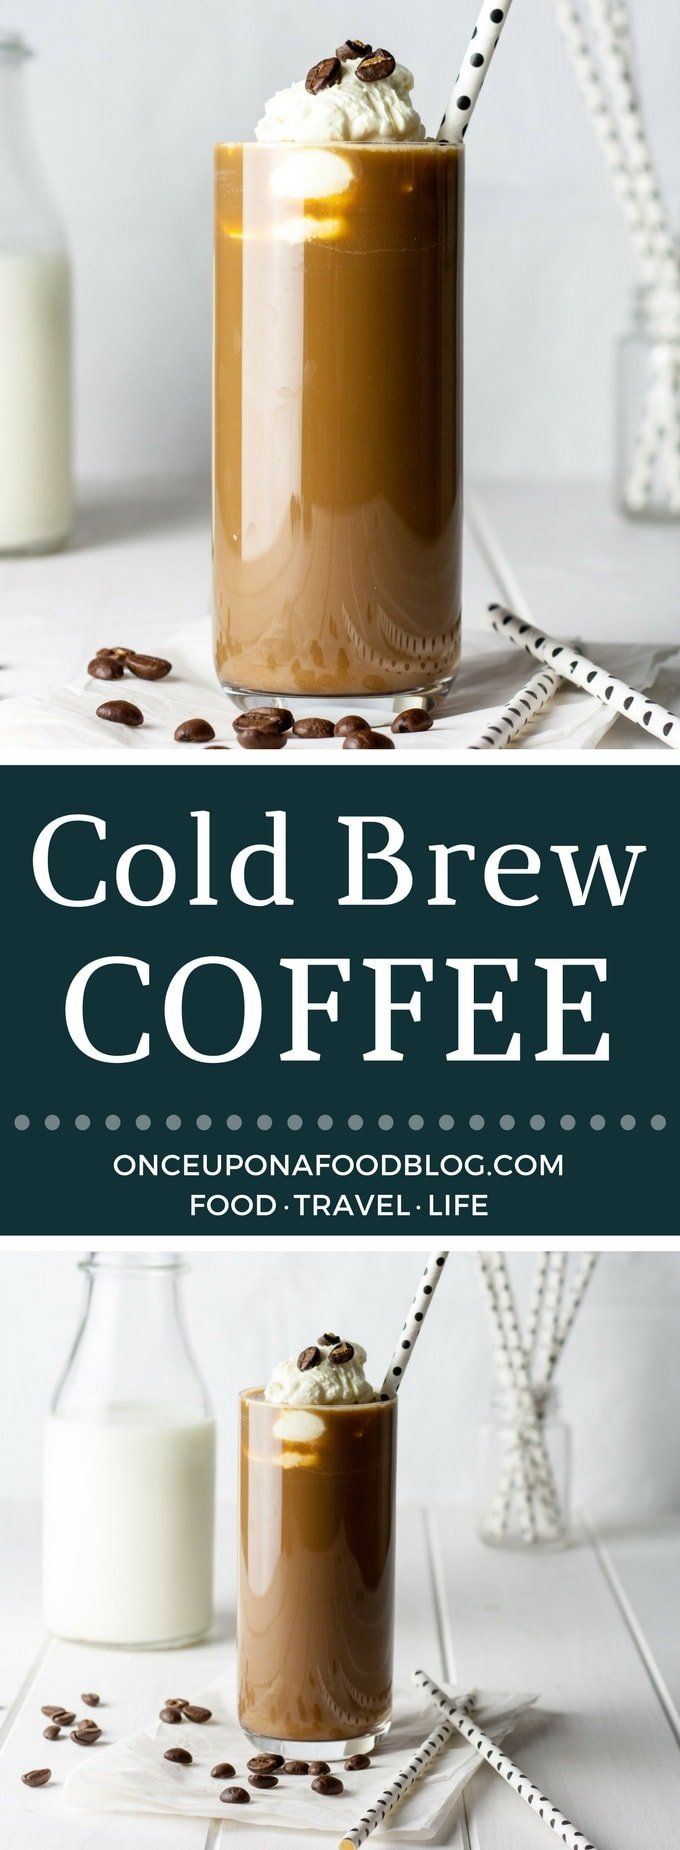 Cold Brew Coffee | Once Upon a Food Blog | Recipe | Making ...